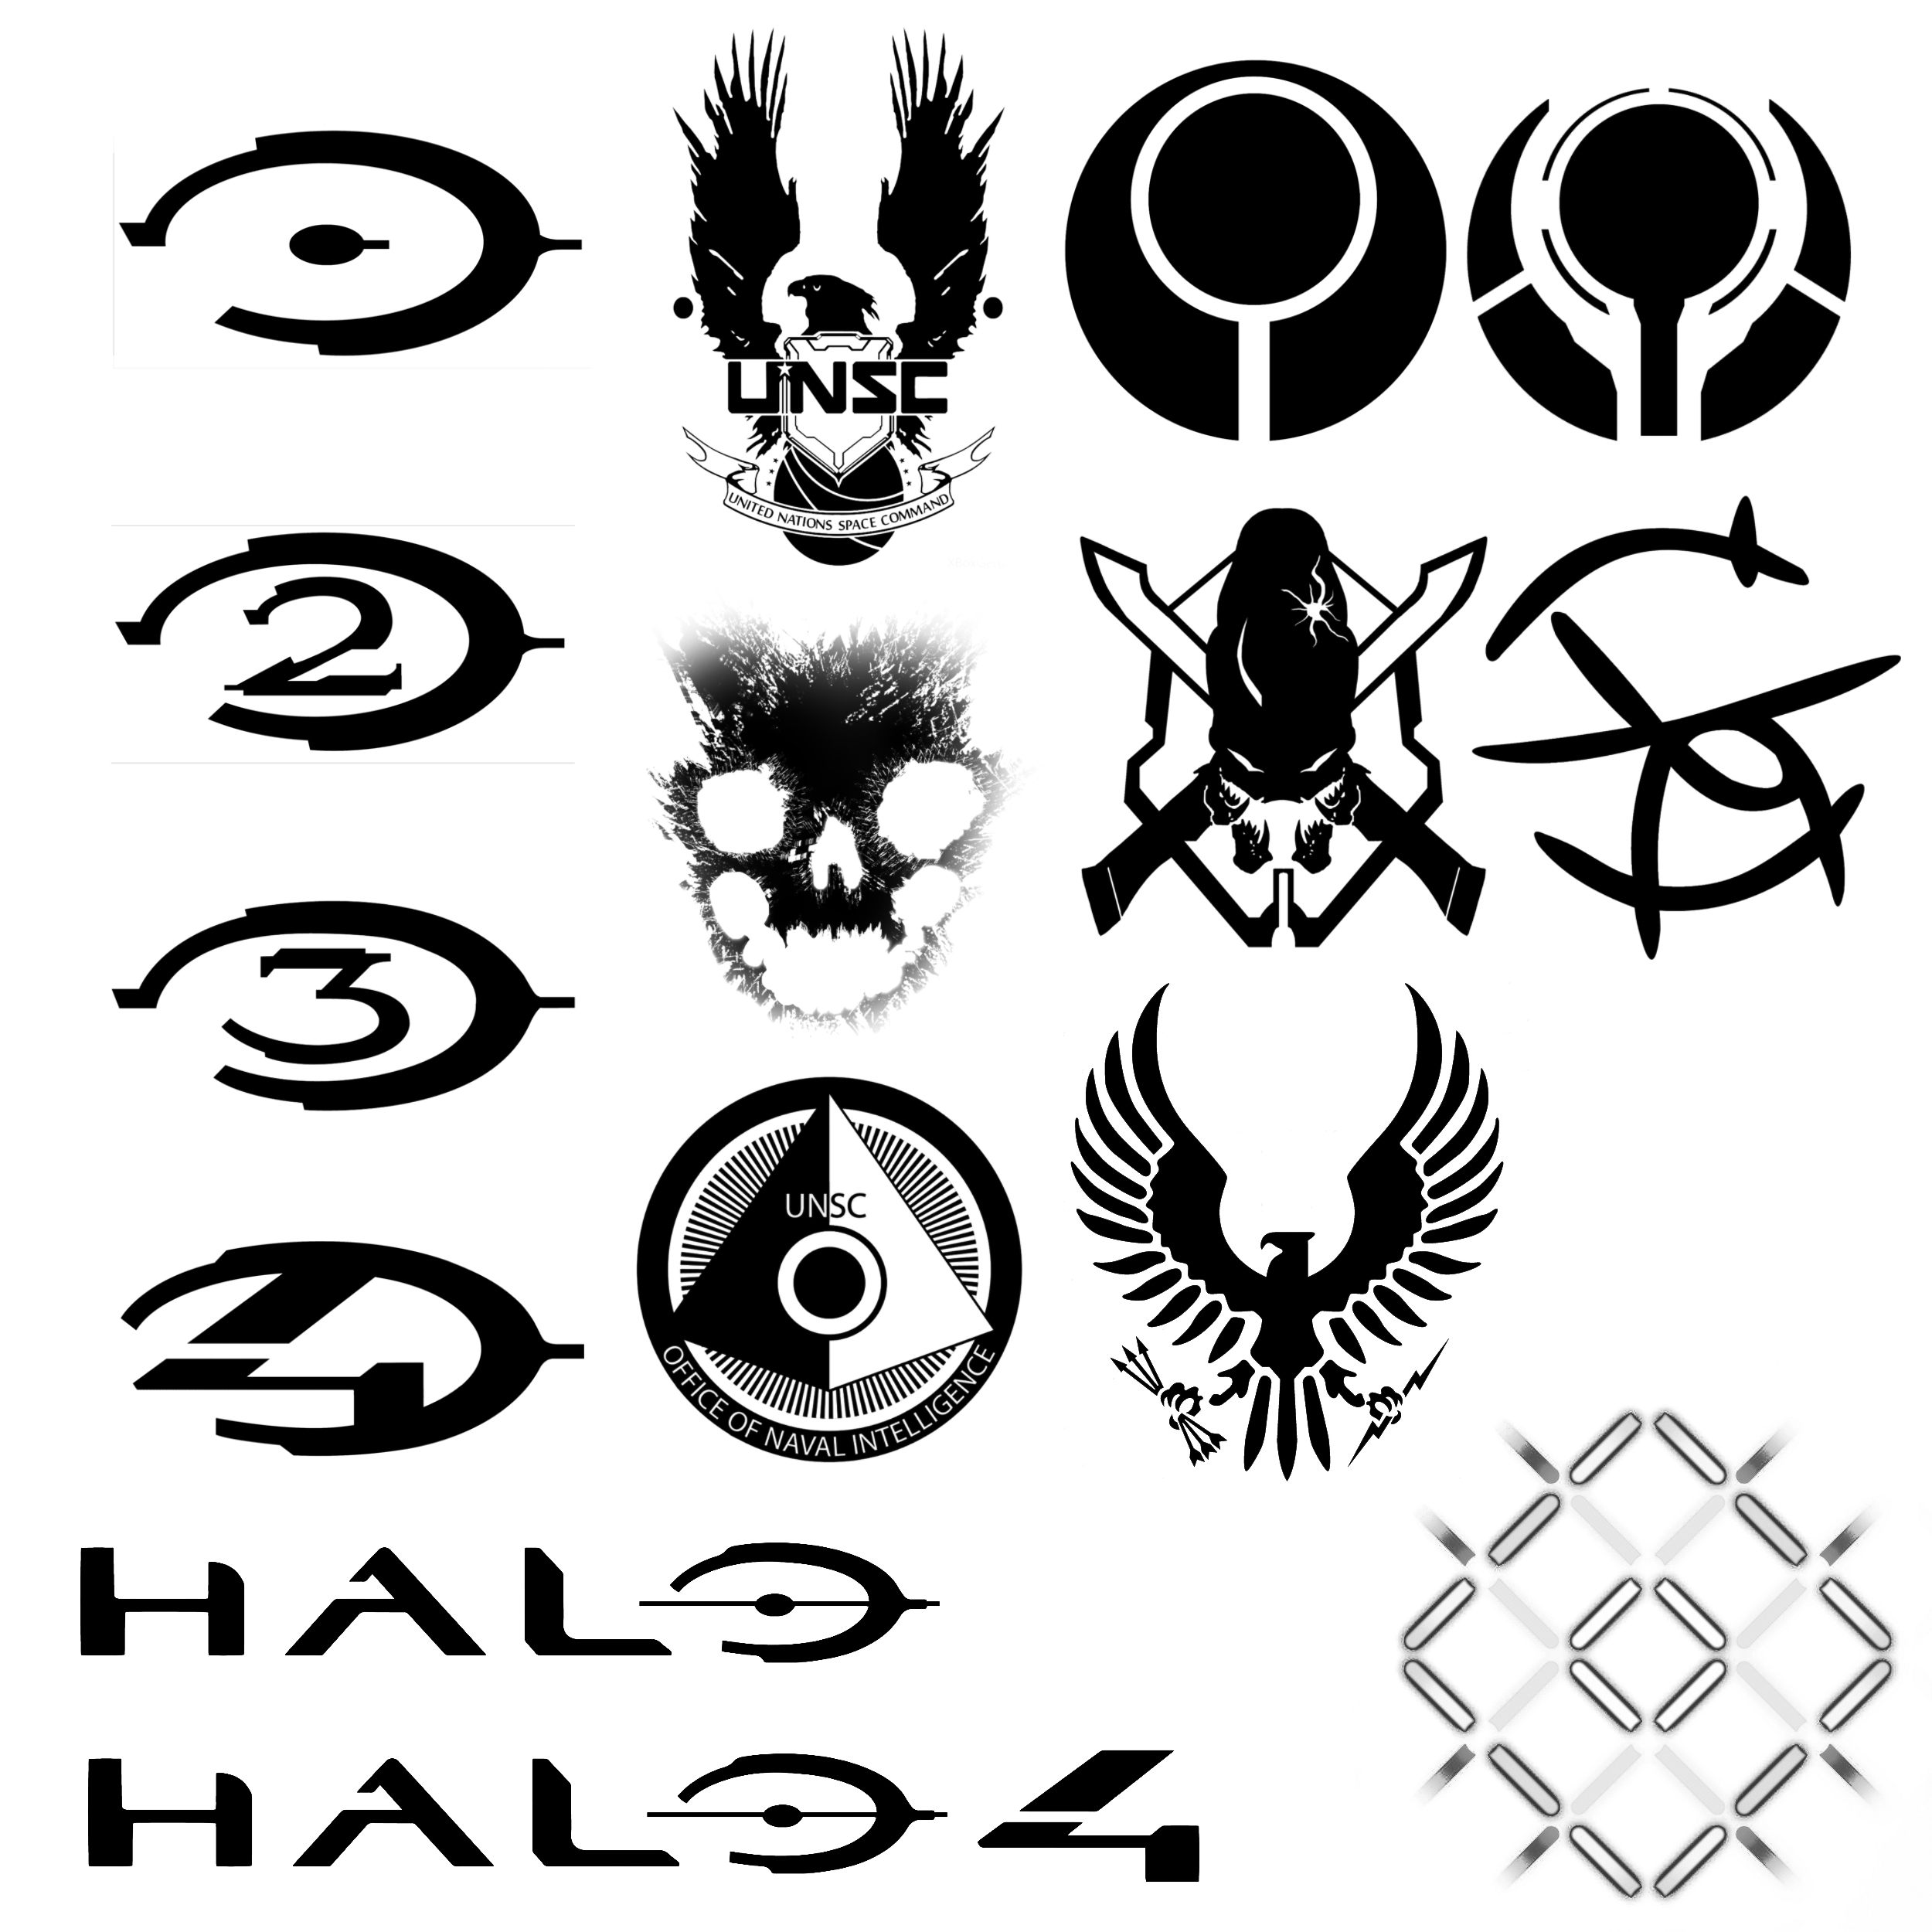 15 Hi-Def halo themed brushes by Nick004 on DeviantArt